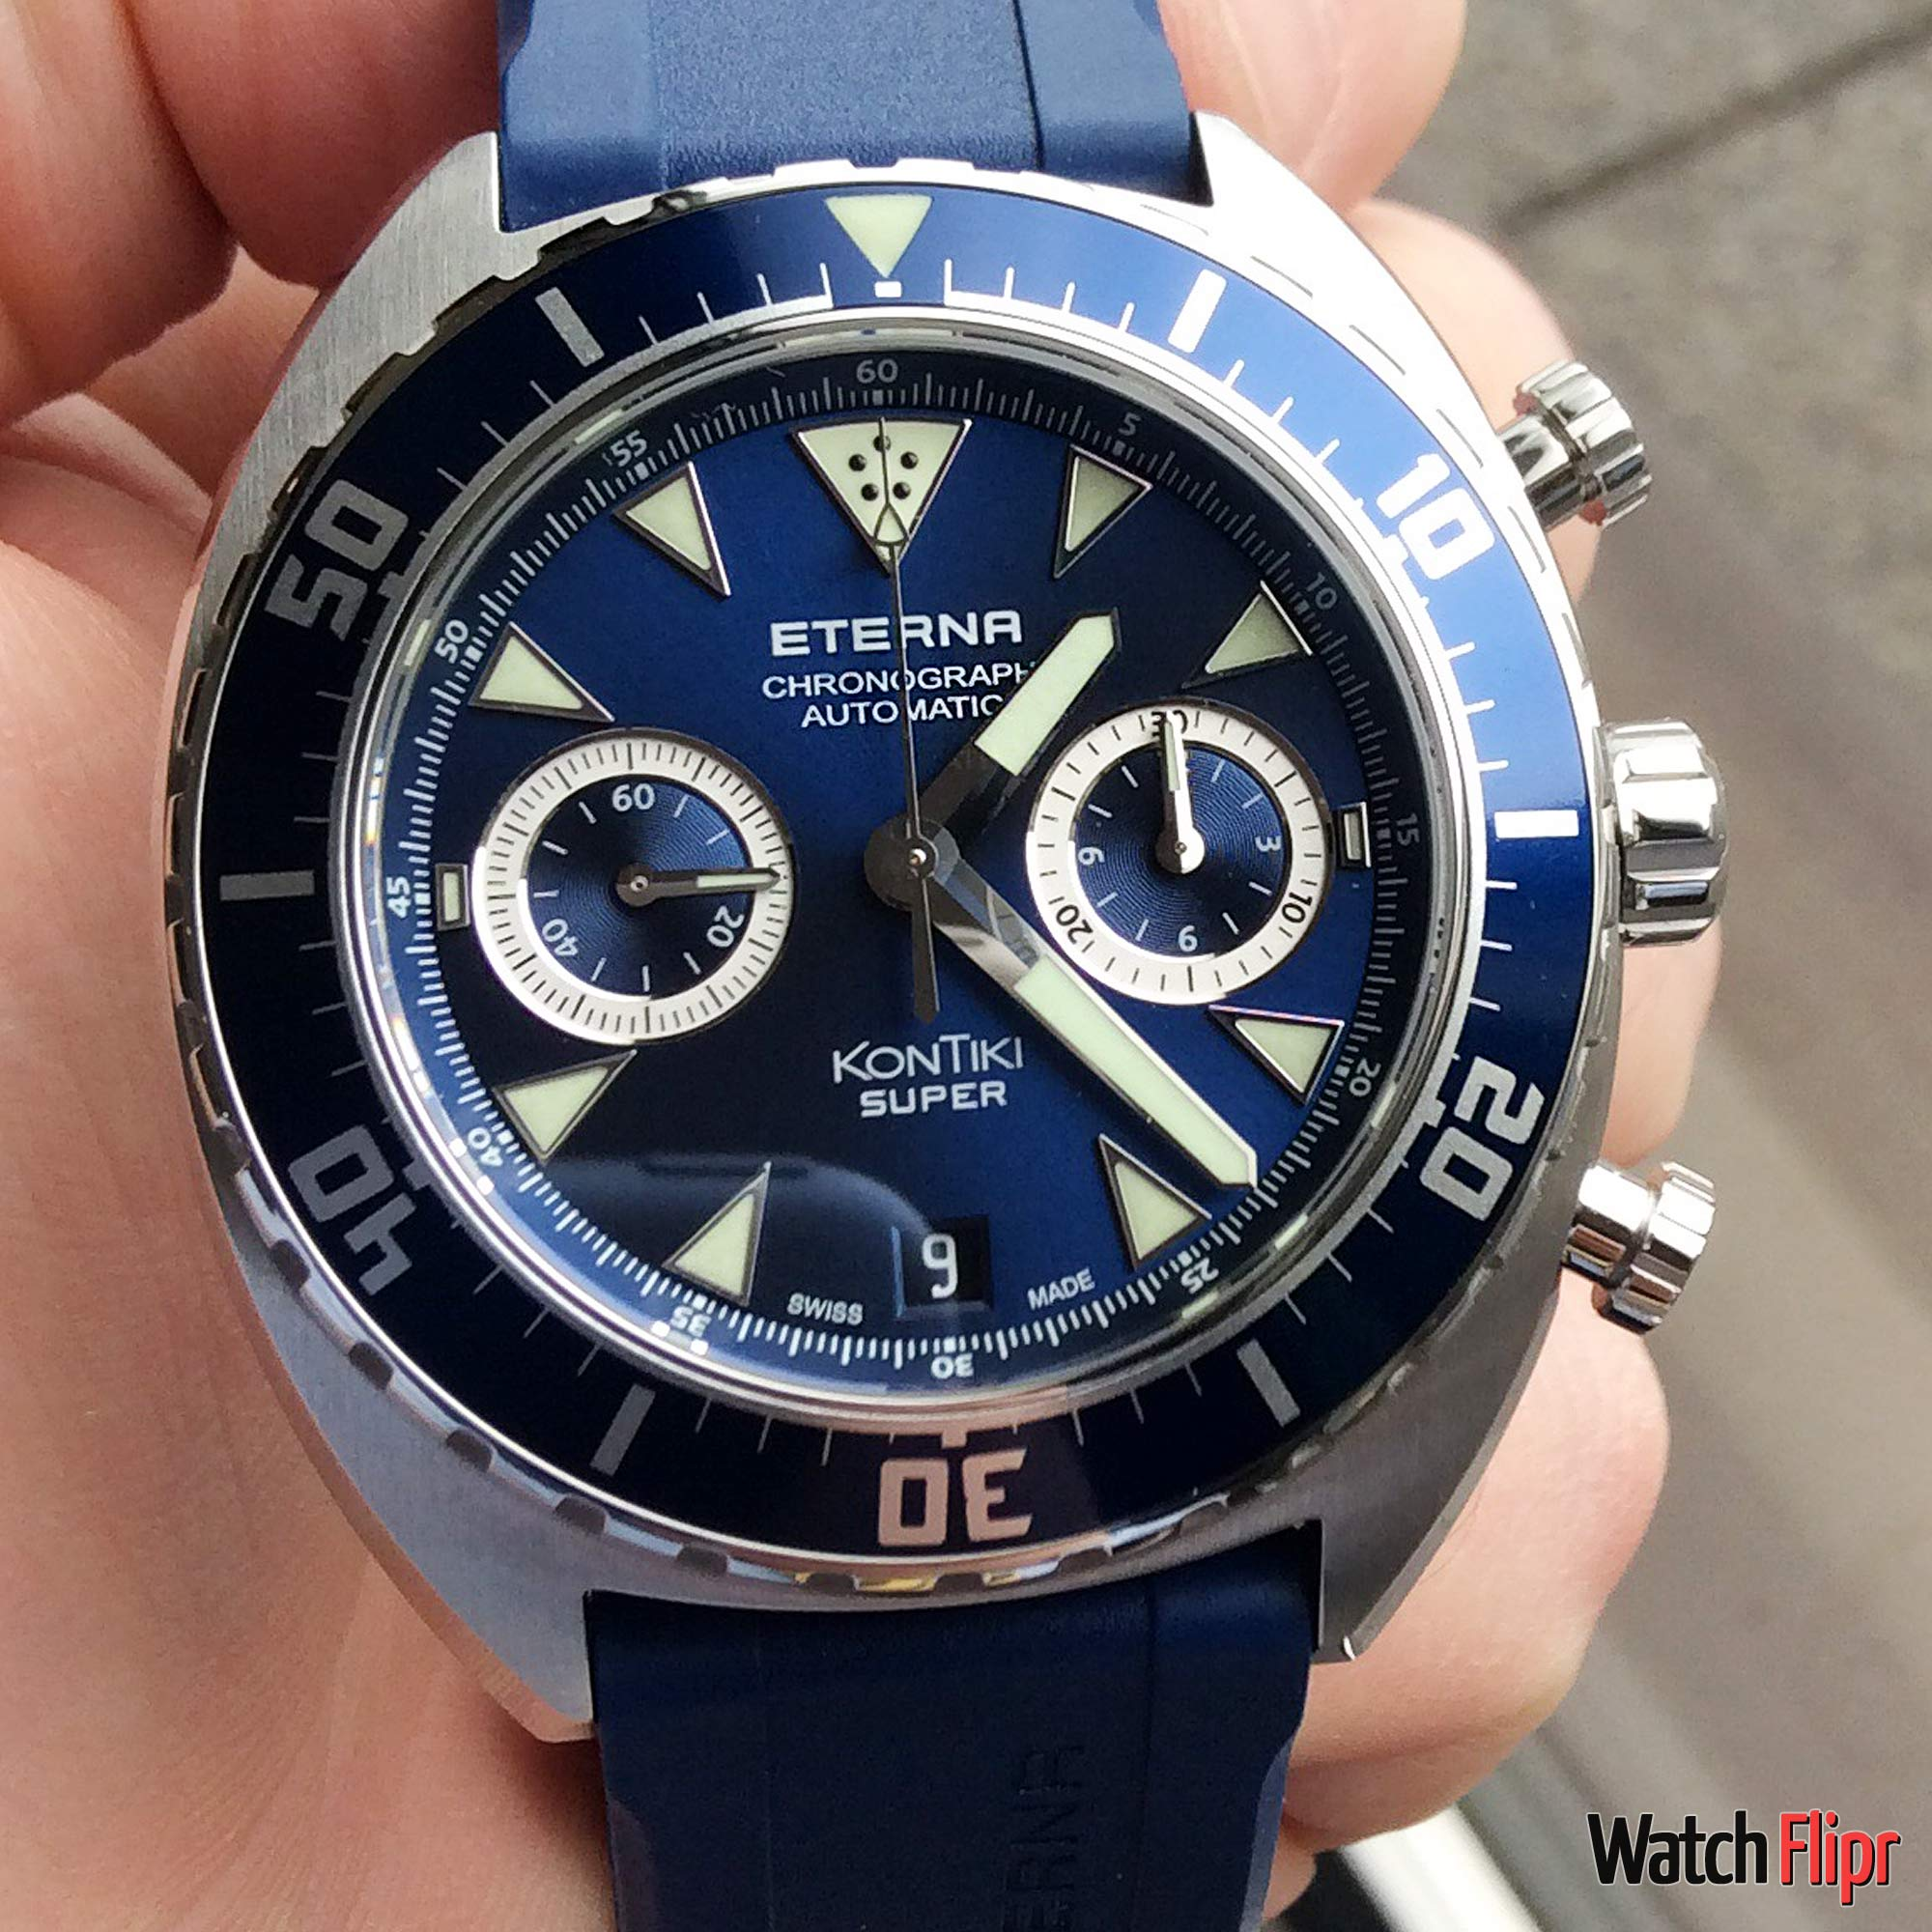 Eterna New Super KonTiki Chronograph In-House Watch Review